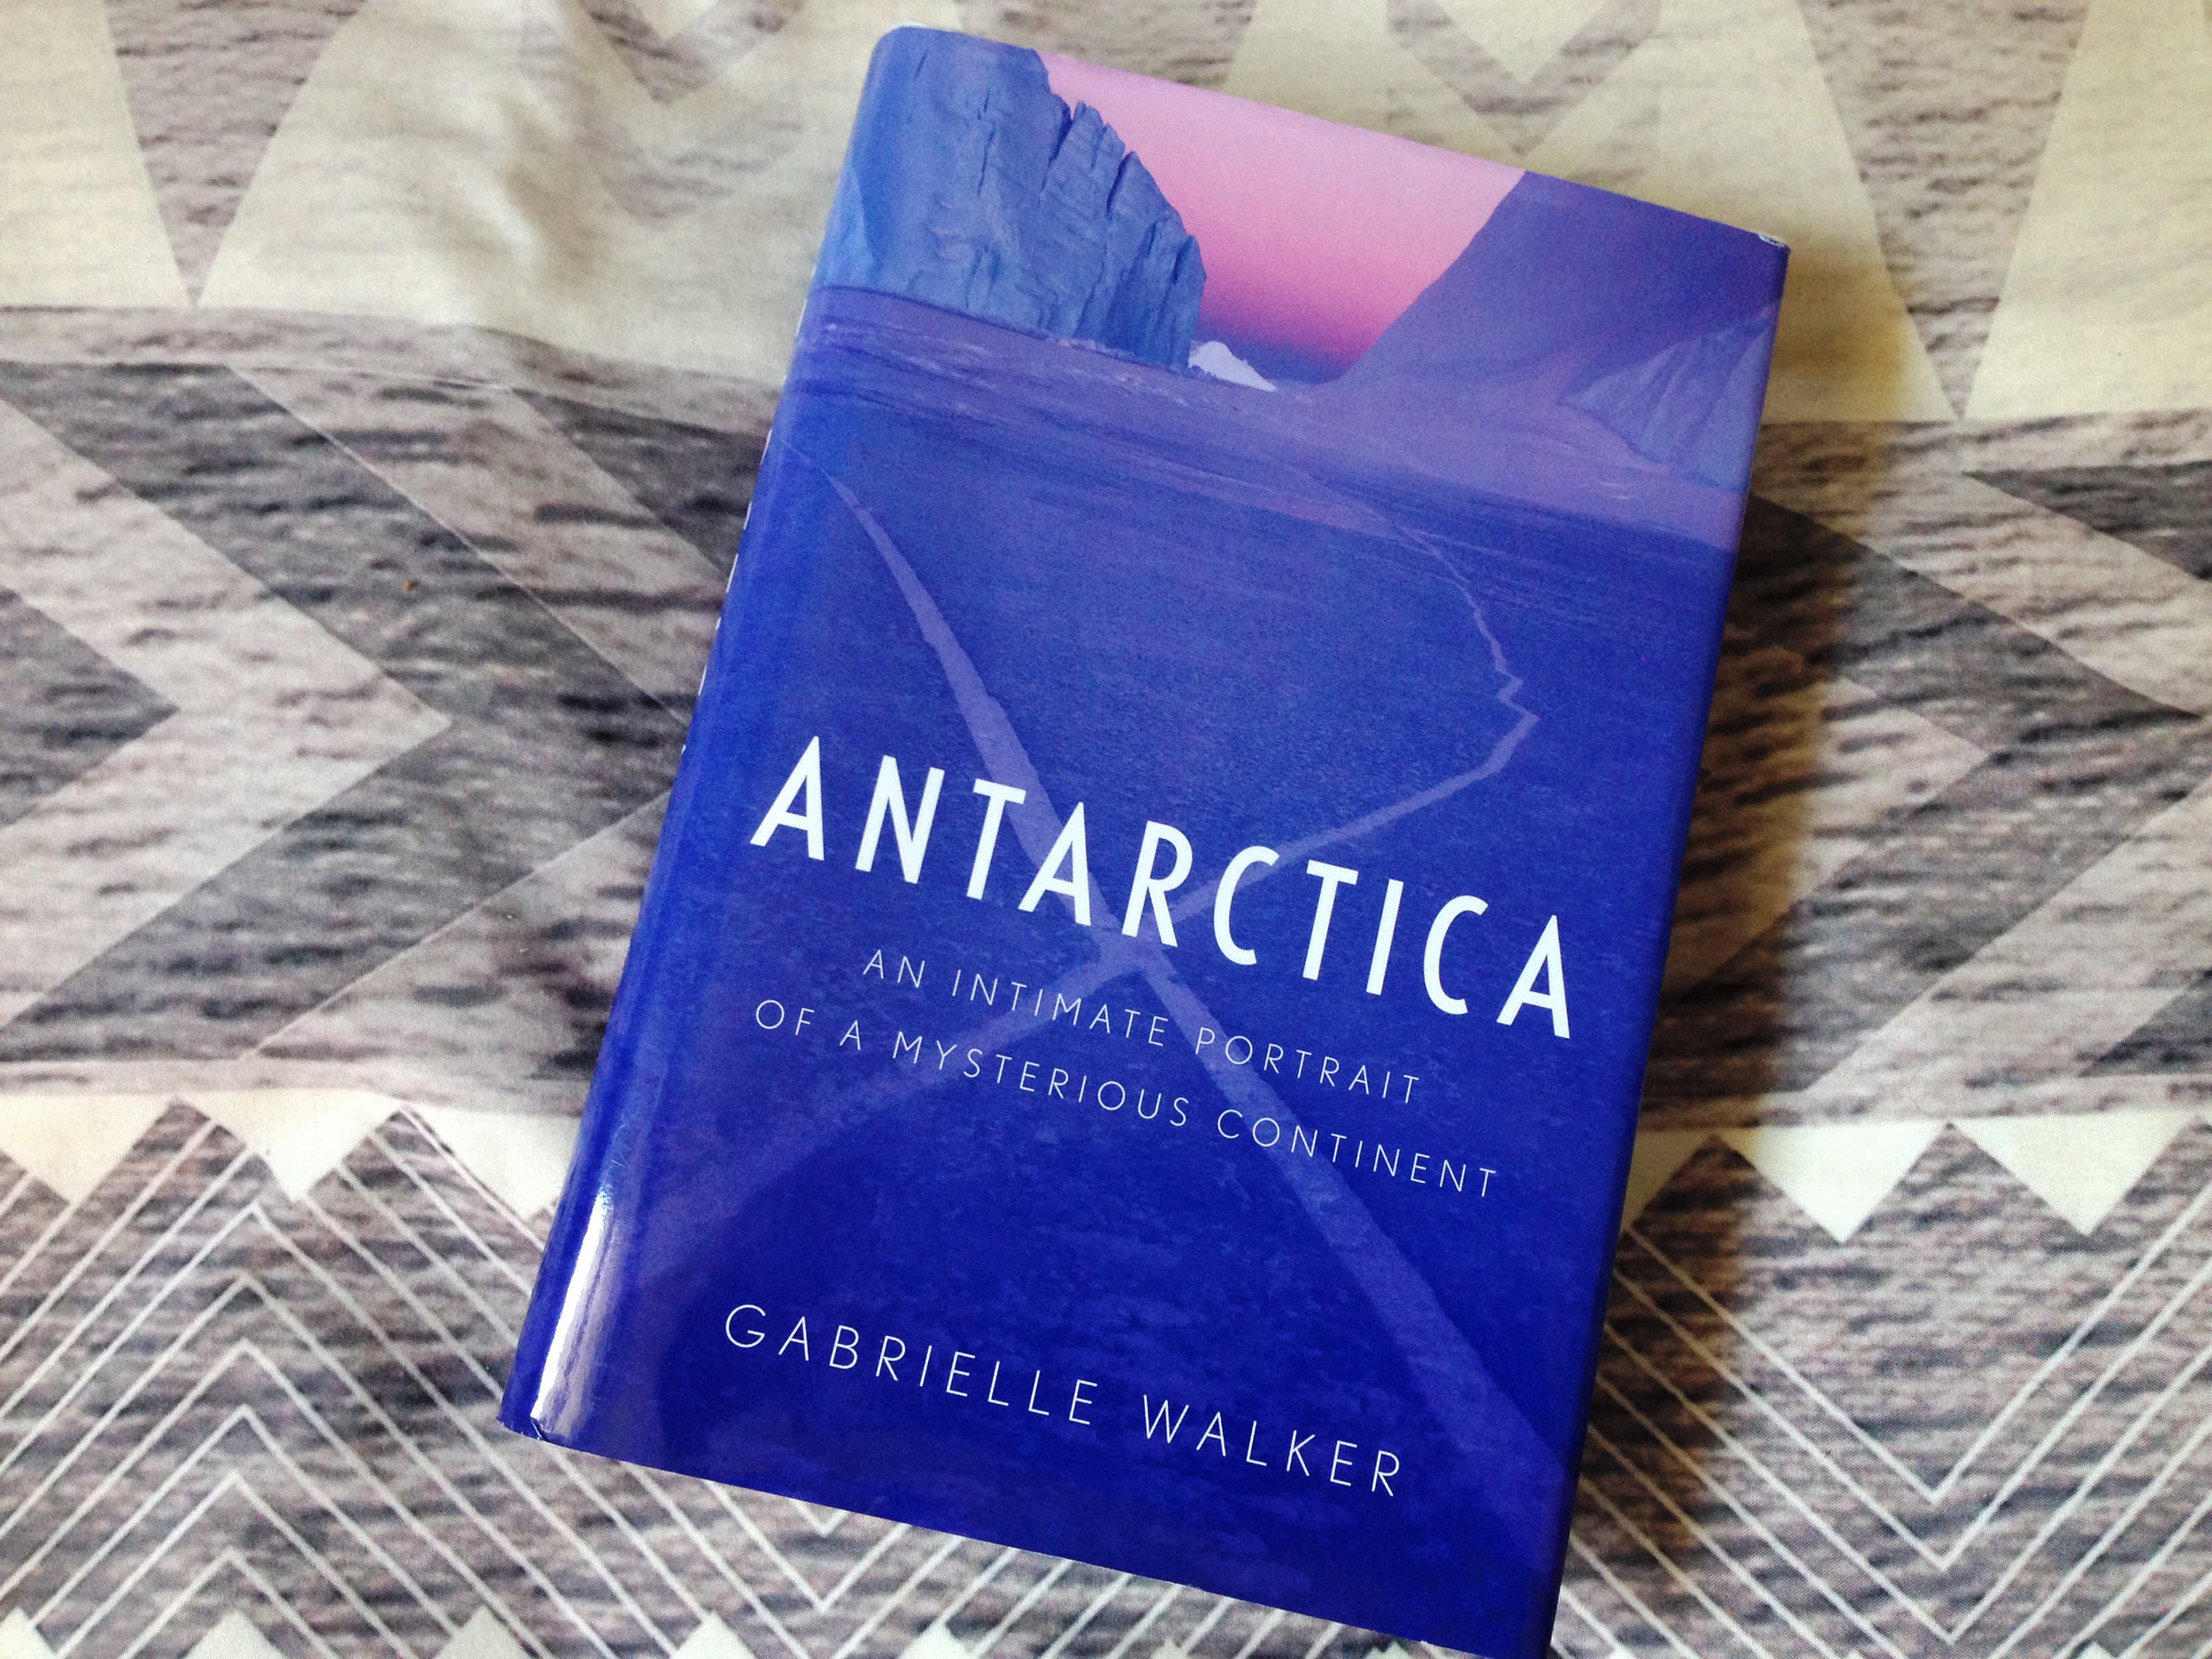 A wonderful Christmas present from my mom. In the past year, I've read seven books about Antarctica.